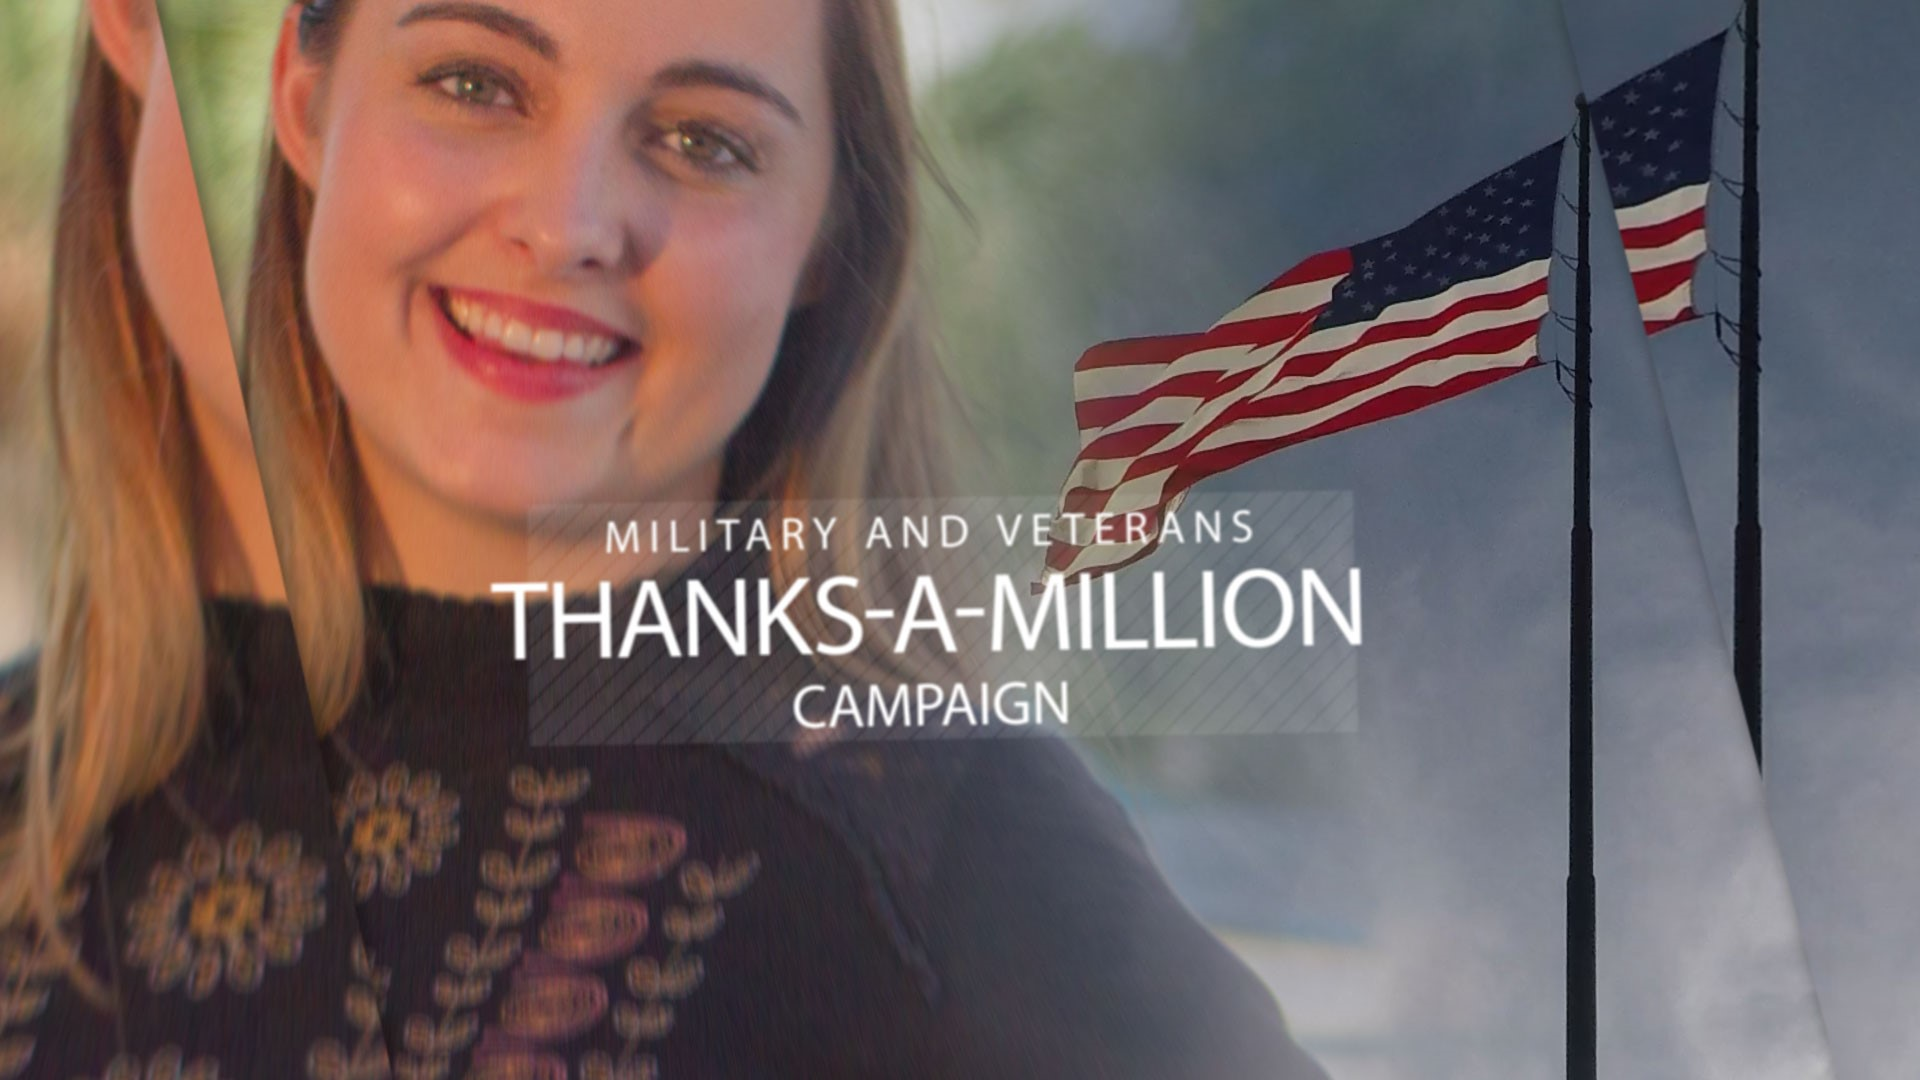 Military/Veterans Thanks a Million Campaign